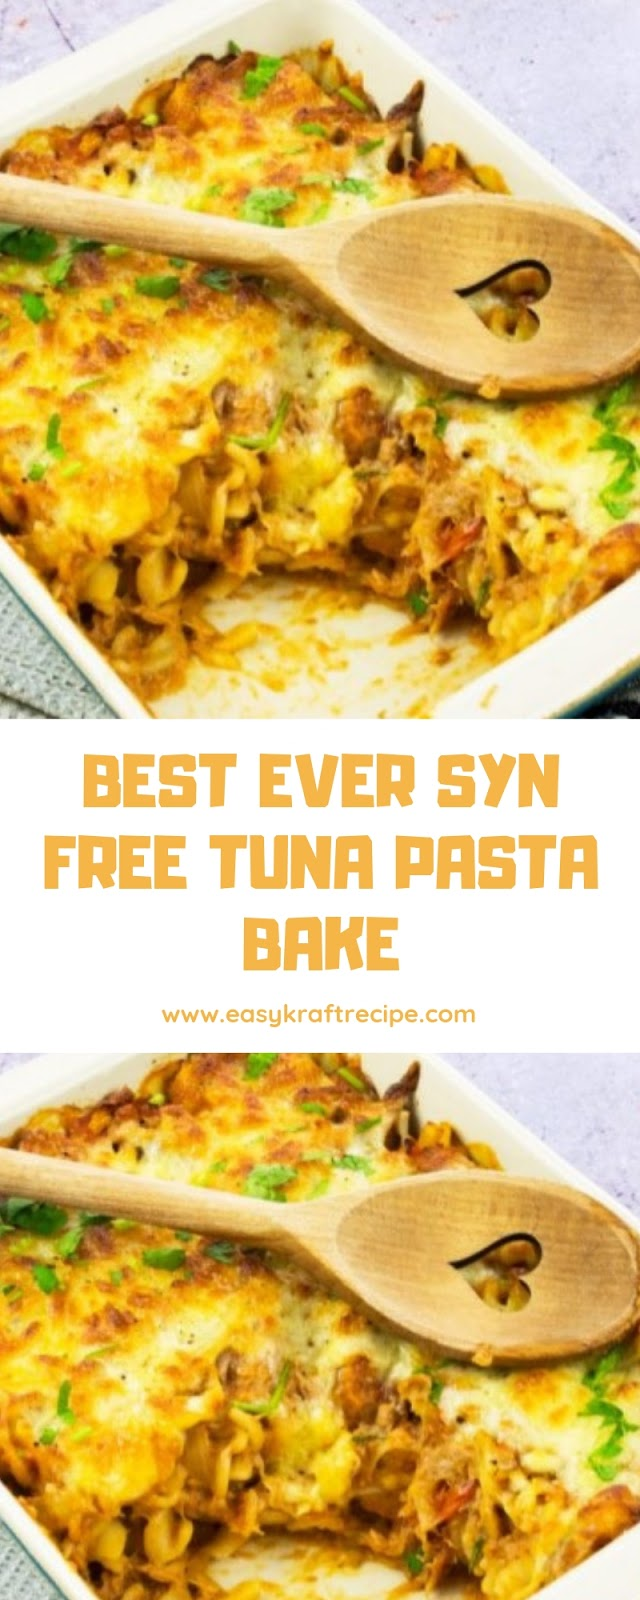 BEST EVER SYN FREE TUNA PASTA BAKE